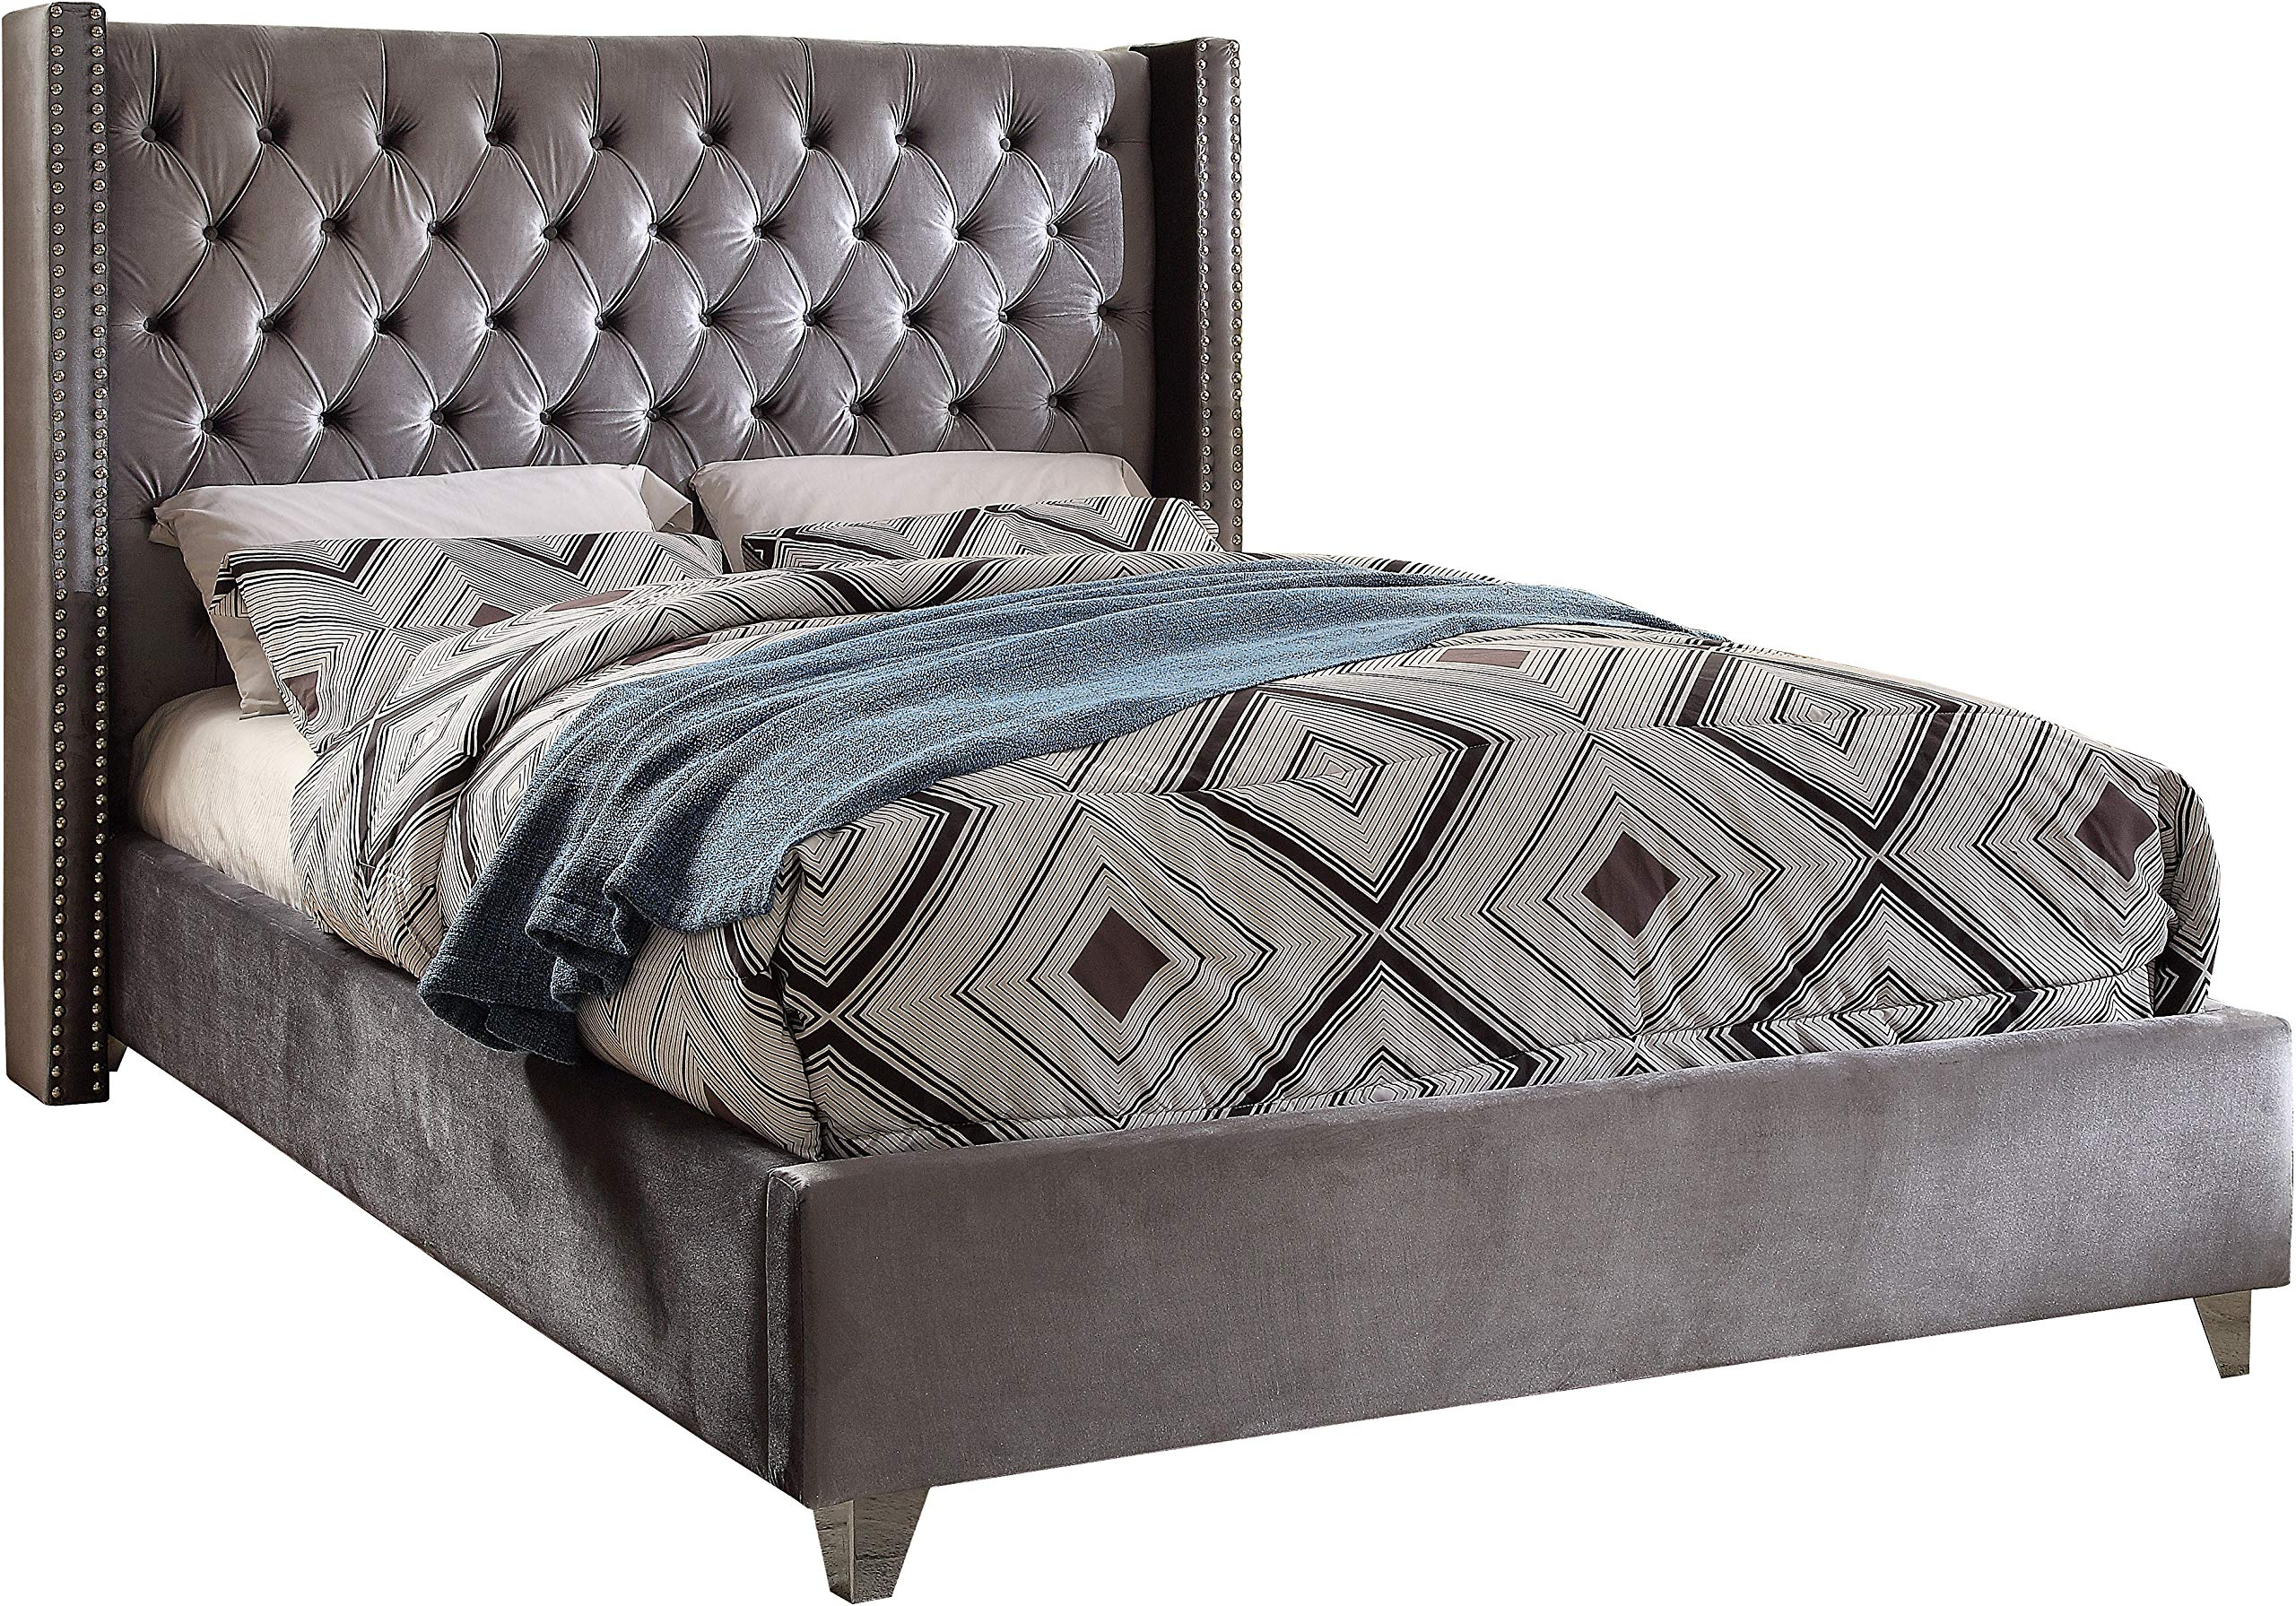 Meridian Furniture Aiden Collection Velvet Upholstered Button Tufted Wingback Bed Nailhead Trim and Custom Chrome Legs, 72'' W x 86'' D x 56'' H, Queen, Grey by Meridian Furniture